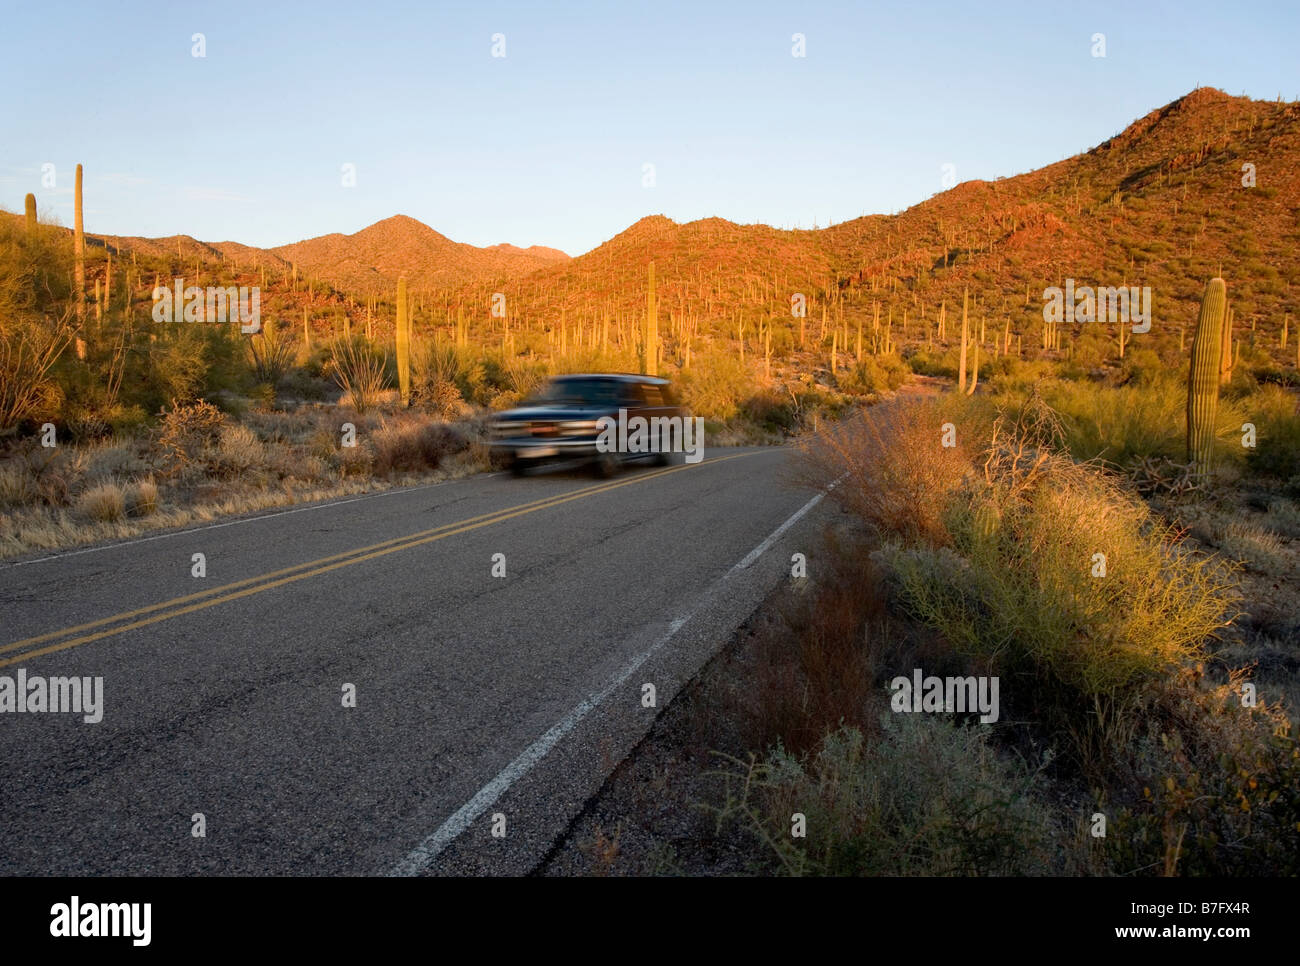 A car drives through Saguaro West National Park on Kinney Road near teh Red Hills area and near Gould Mine Trail - Stock Image